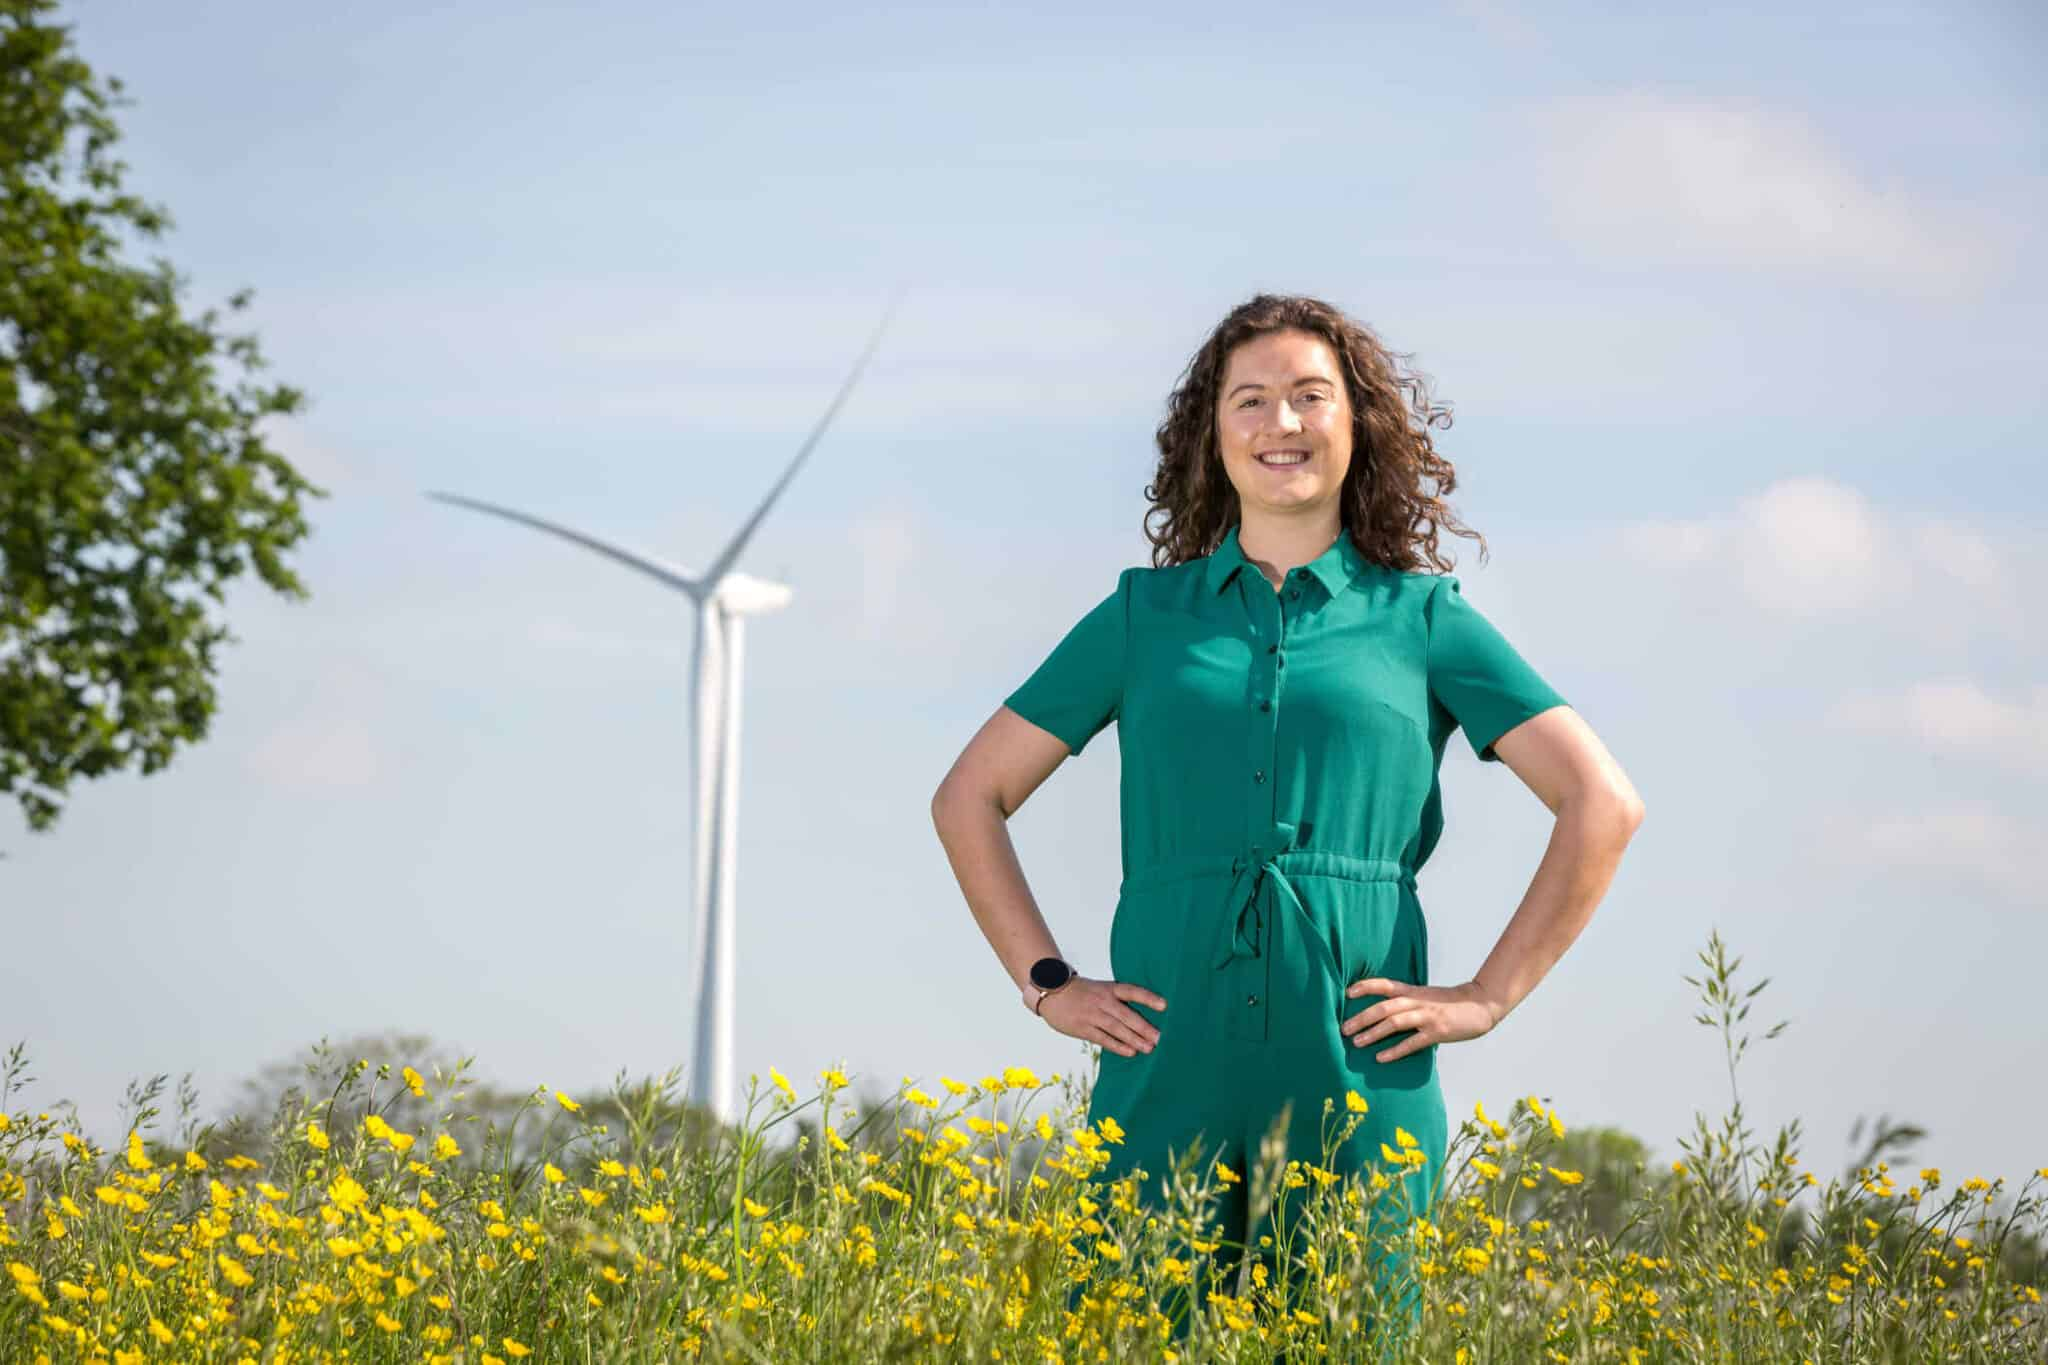 Mollie is standing with her hand on her hips in a field of yellow flowers. In the background, there is a wind turbine.